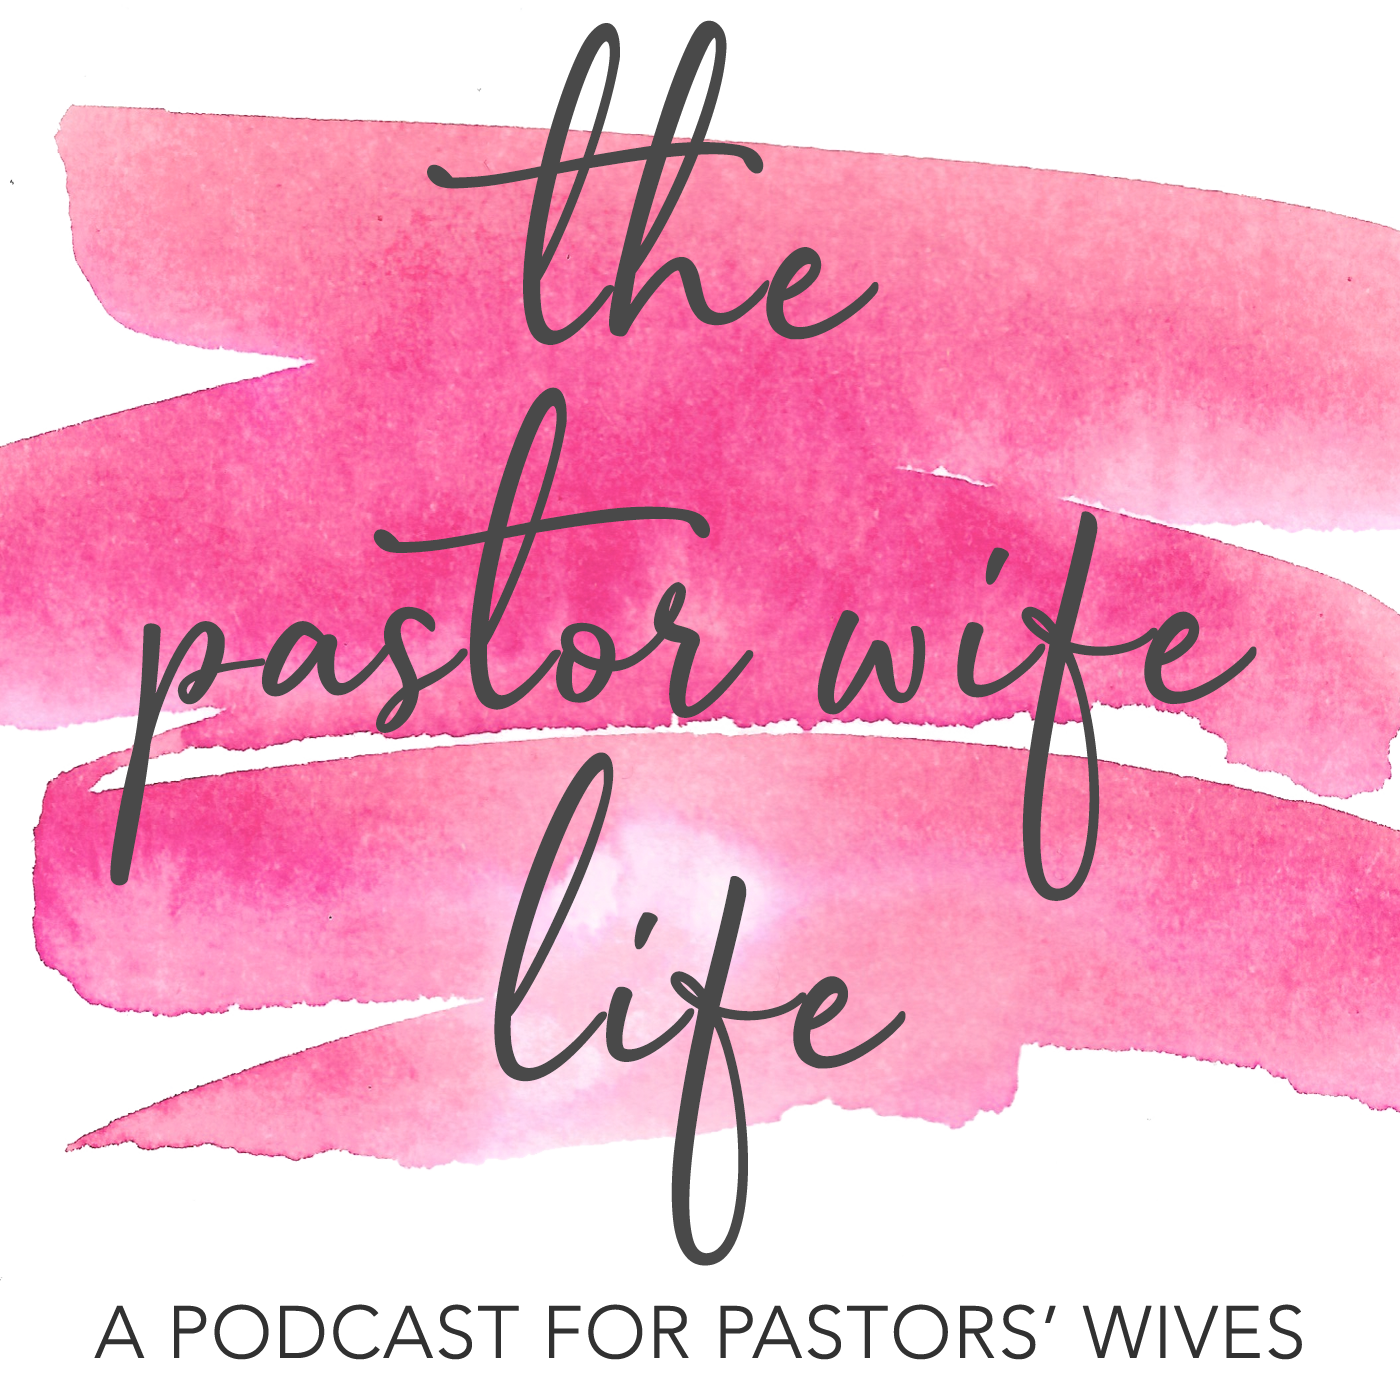 The Pastor Wife Life show art